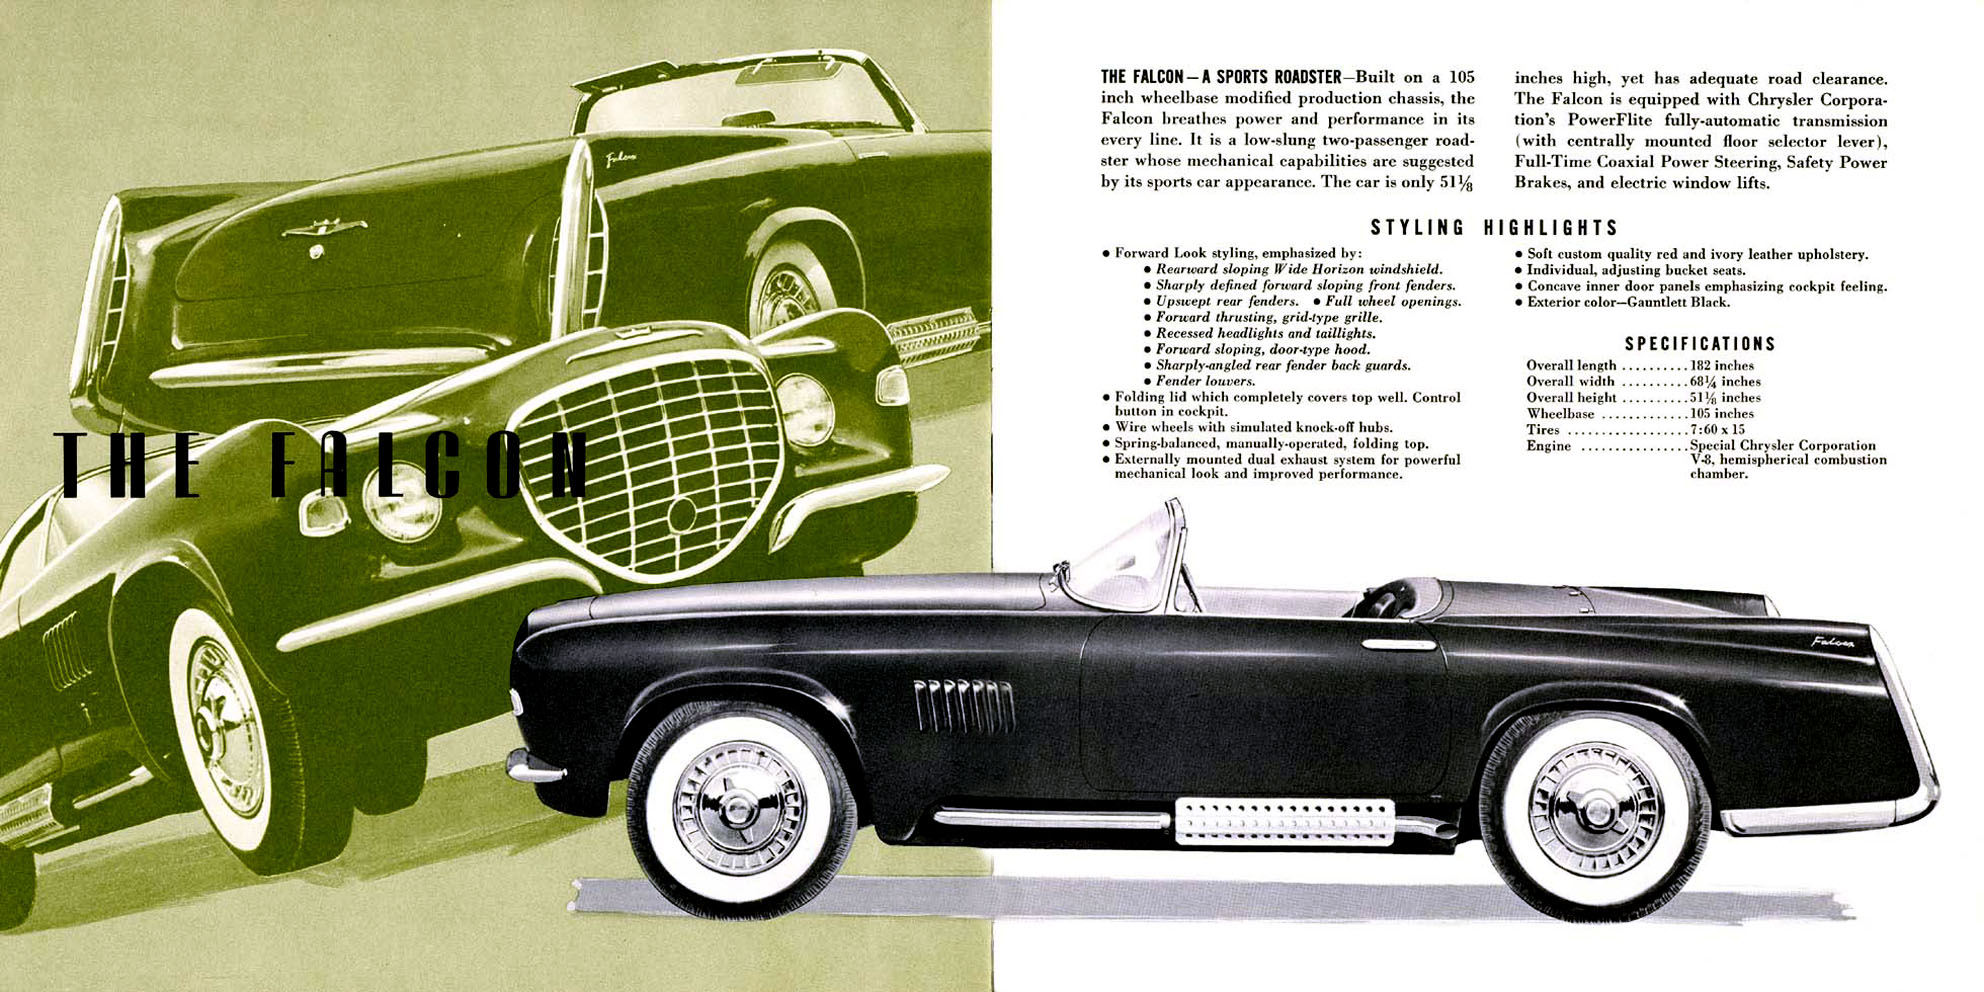 1956 chrysler boano auto shows car and driver - 1956 Falcon Concept Chrysler 2 Seater Concept I Guess Ford Got To The Name After Them Chrysler Imperial Cord Car Brochures Pinterest Falcons